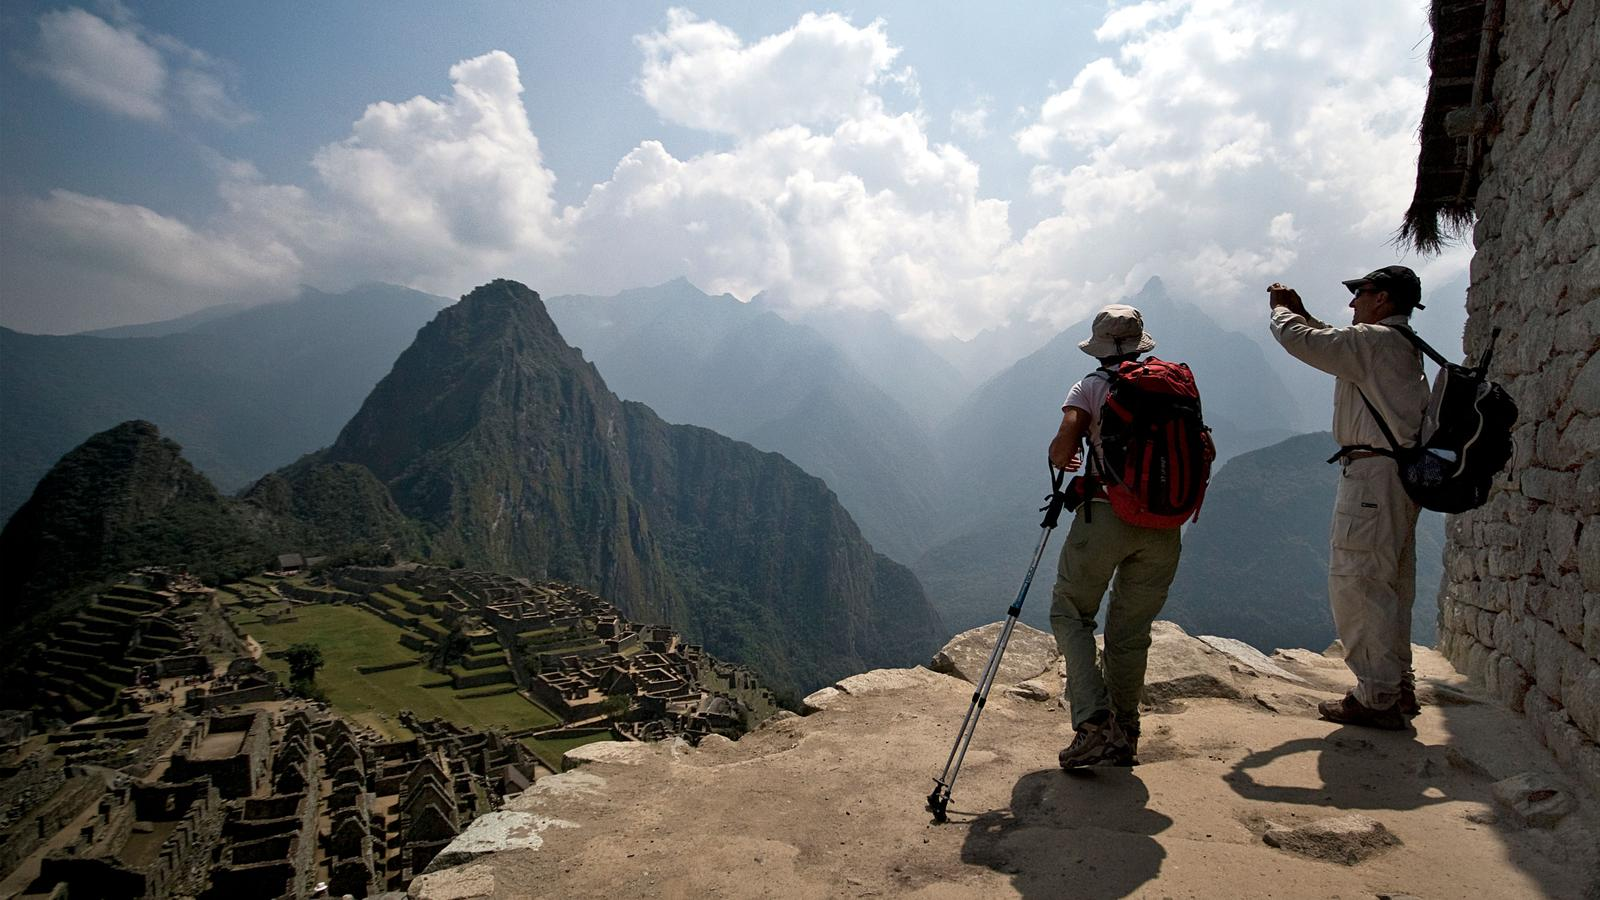 Machu Picchu and the Amazon in Peru, South America - G ...